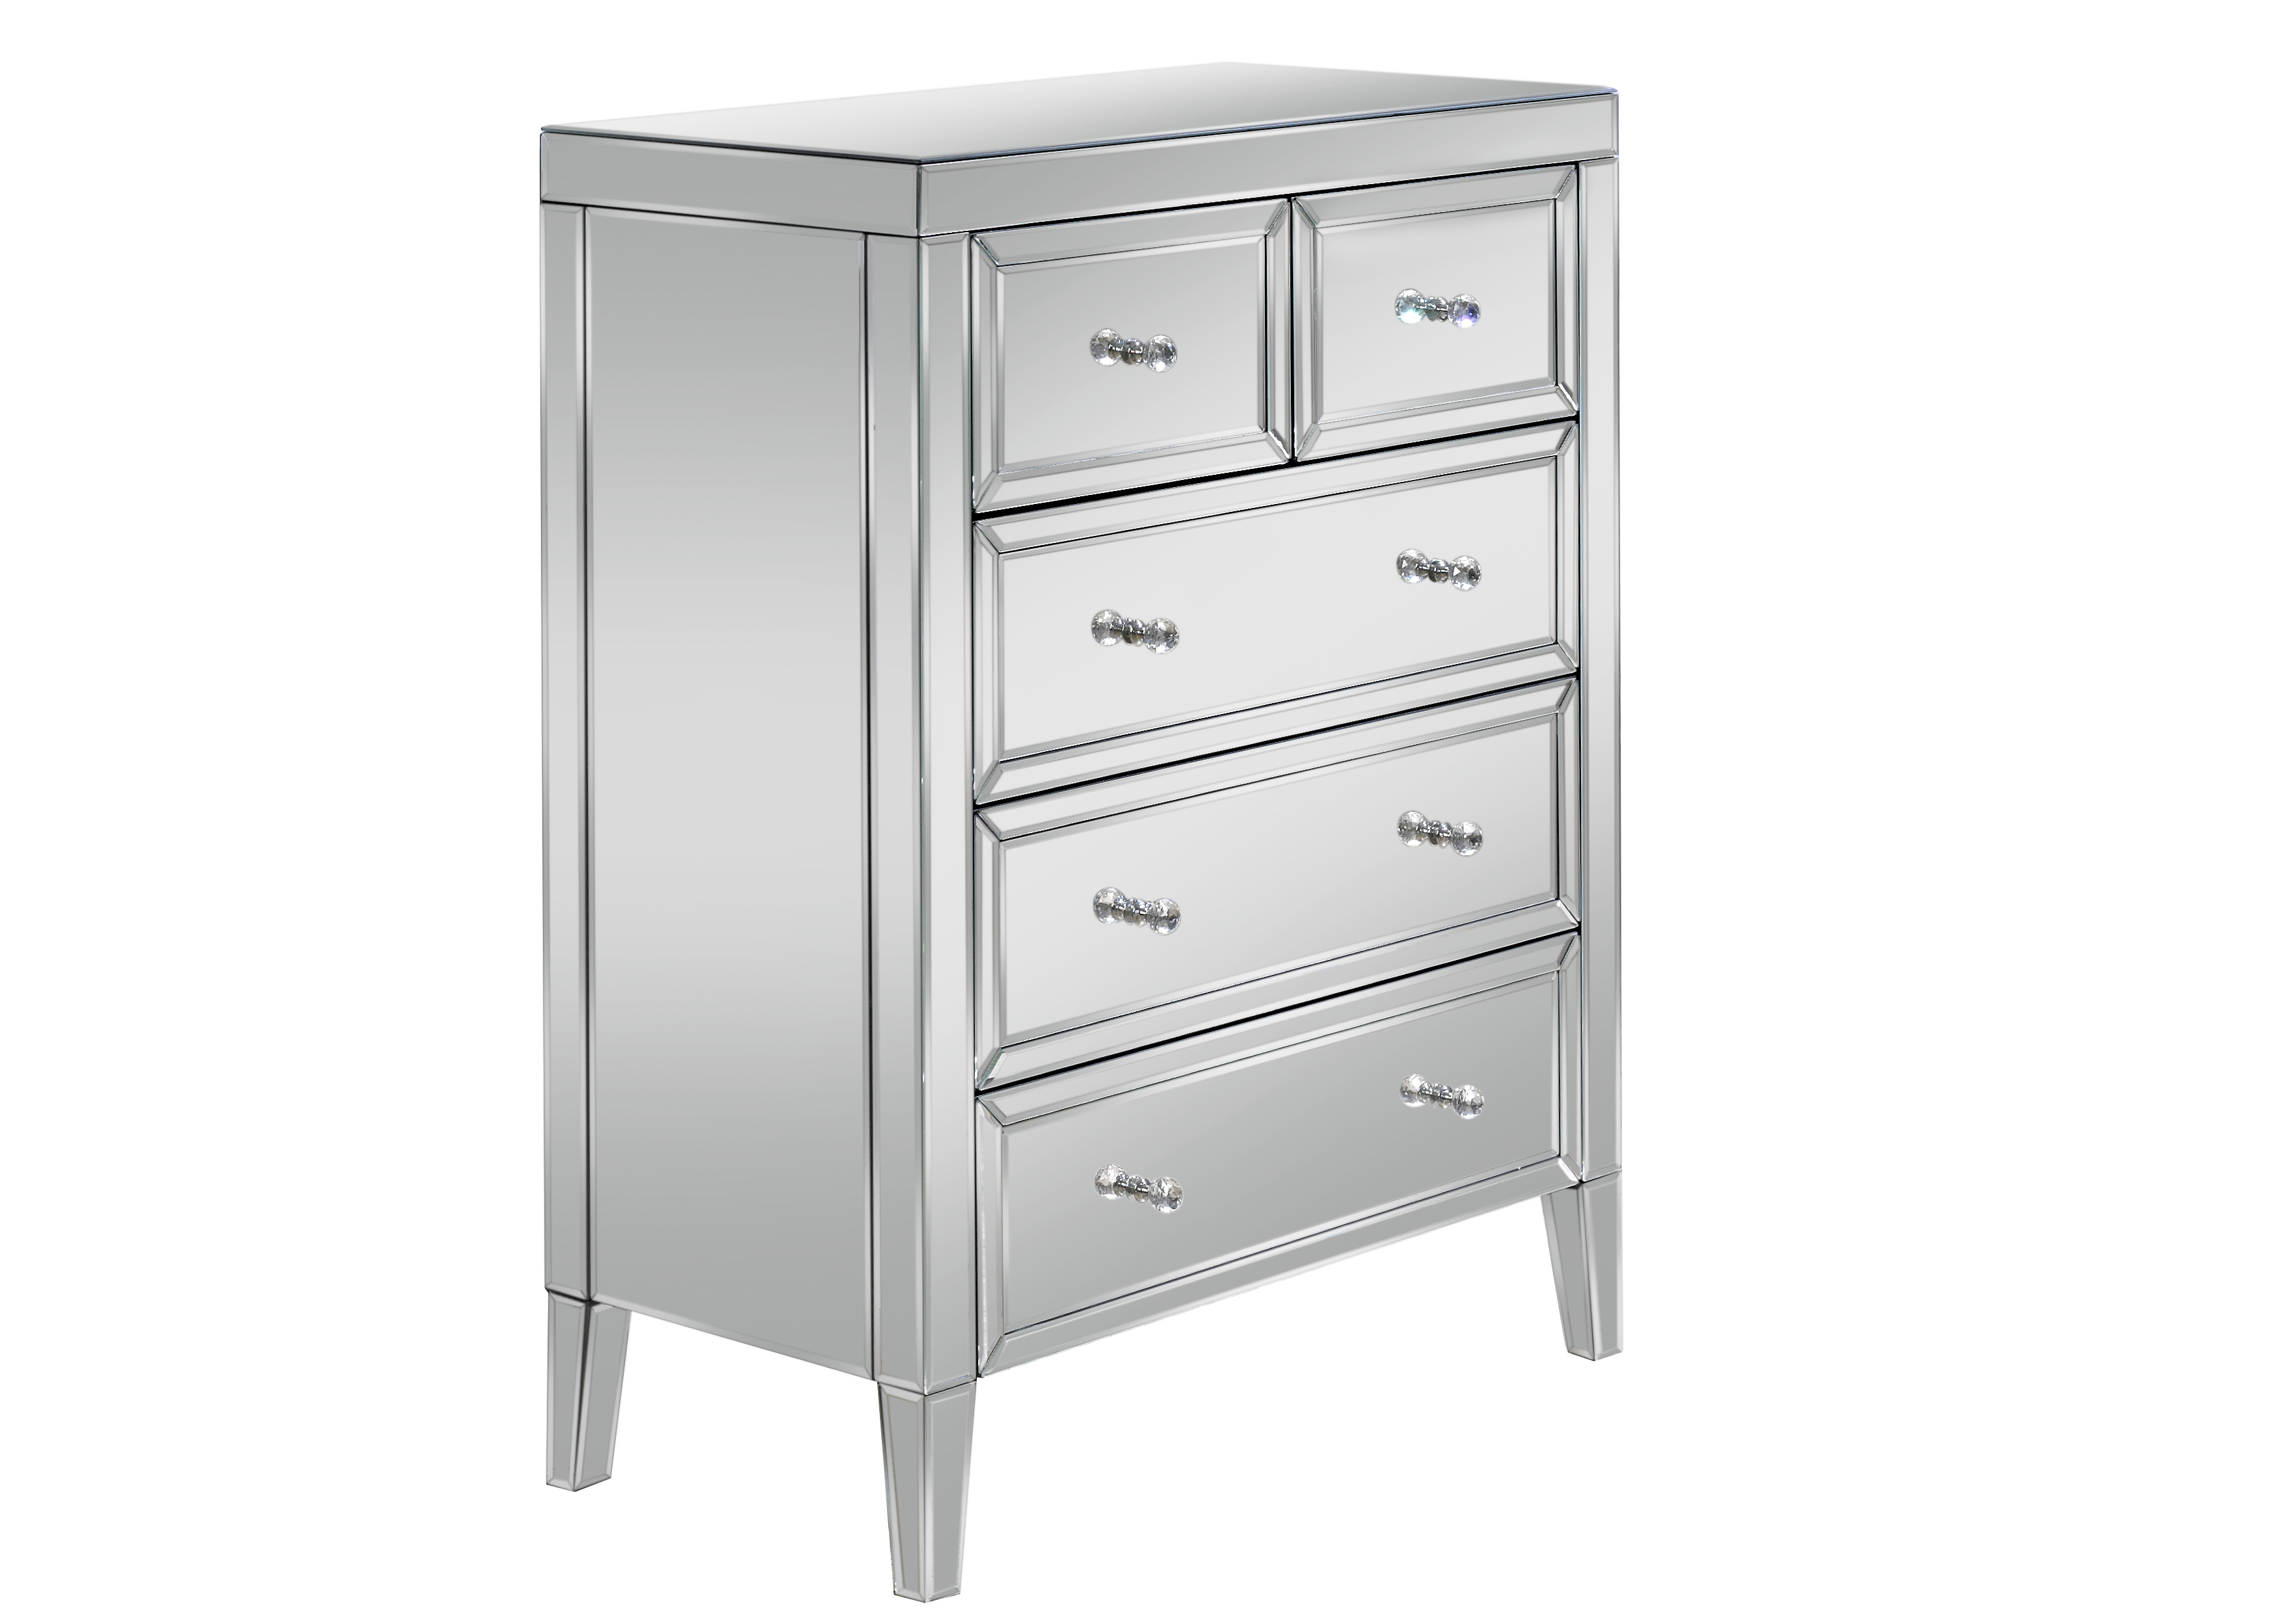 Valencia 3 + 2 Drawer Chest Assembly Instructions (Birlea)